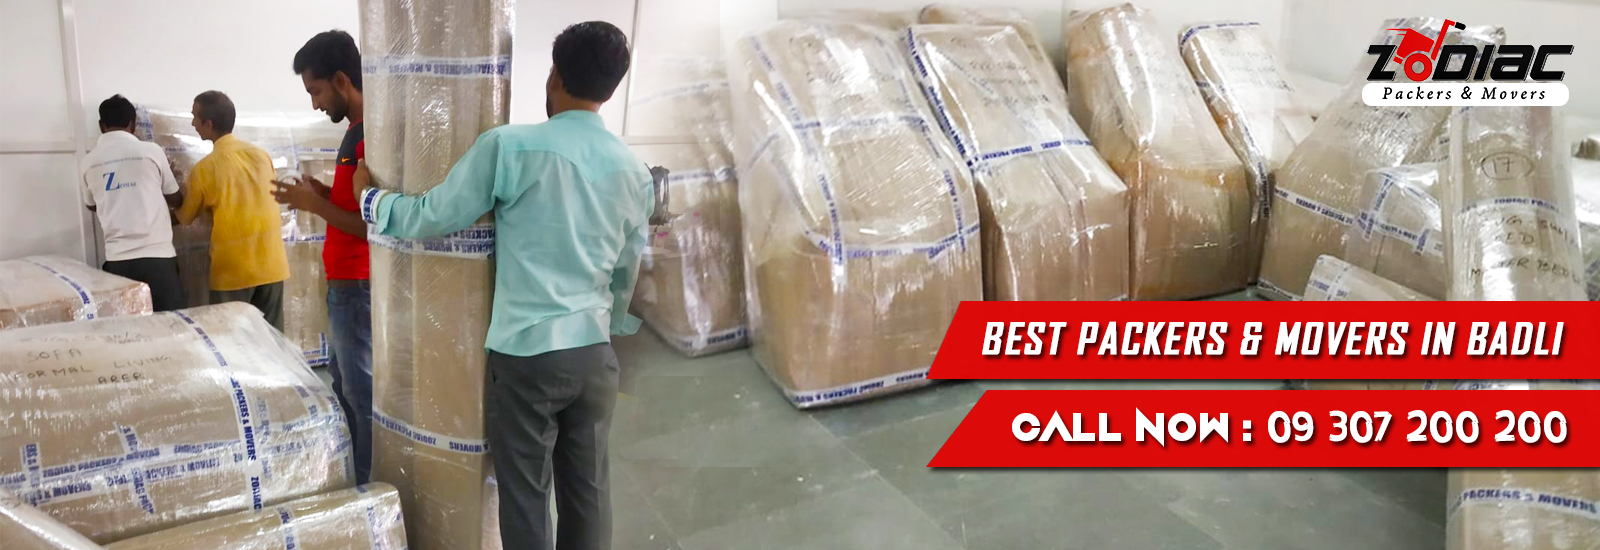 Packers and Movers in Badli